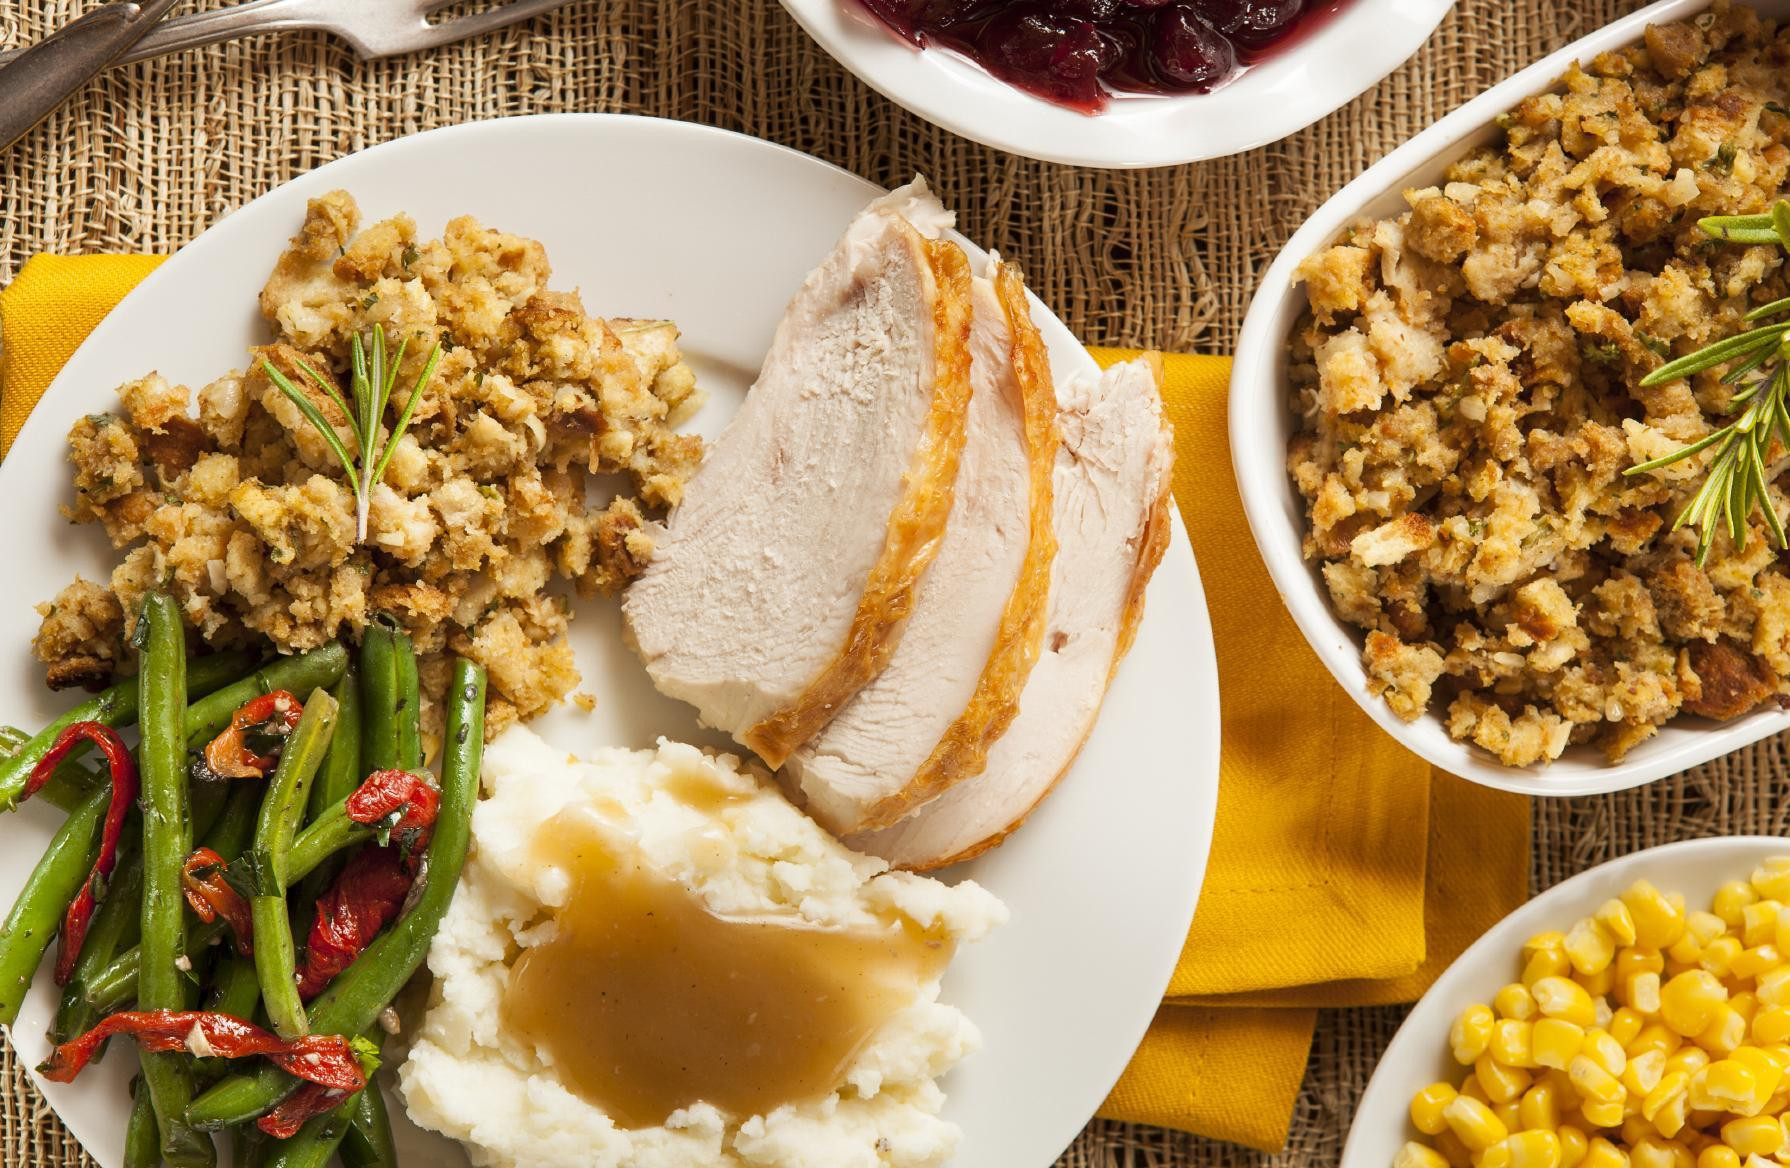 Most Popular Thanksgiving Side Dishes  The 12 Most Popular Thanksgiving Side Dishes Ranked